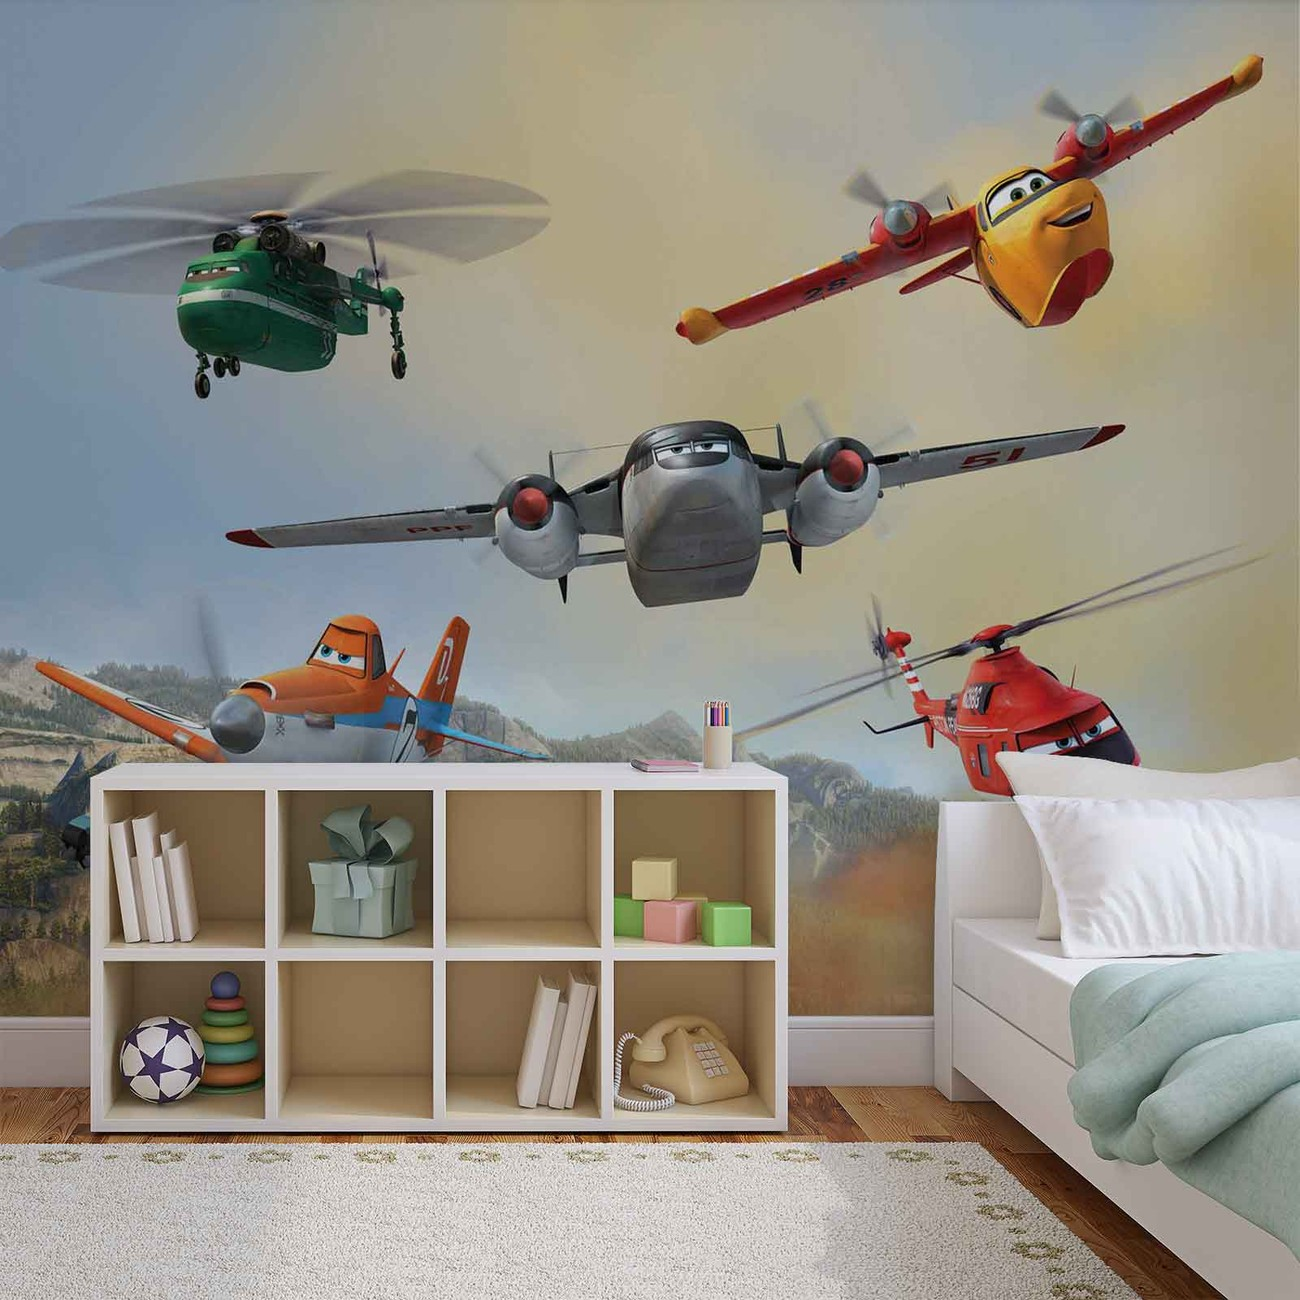 Disney planes dusty blade dipper cabbie wall paper mural for Disney planes wallpaper mural